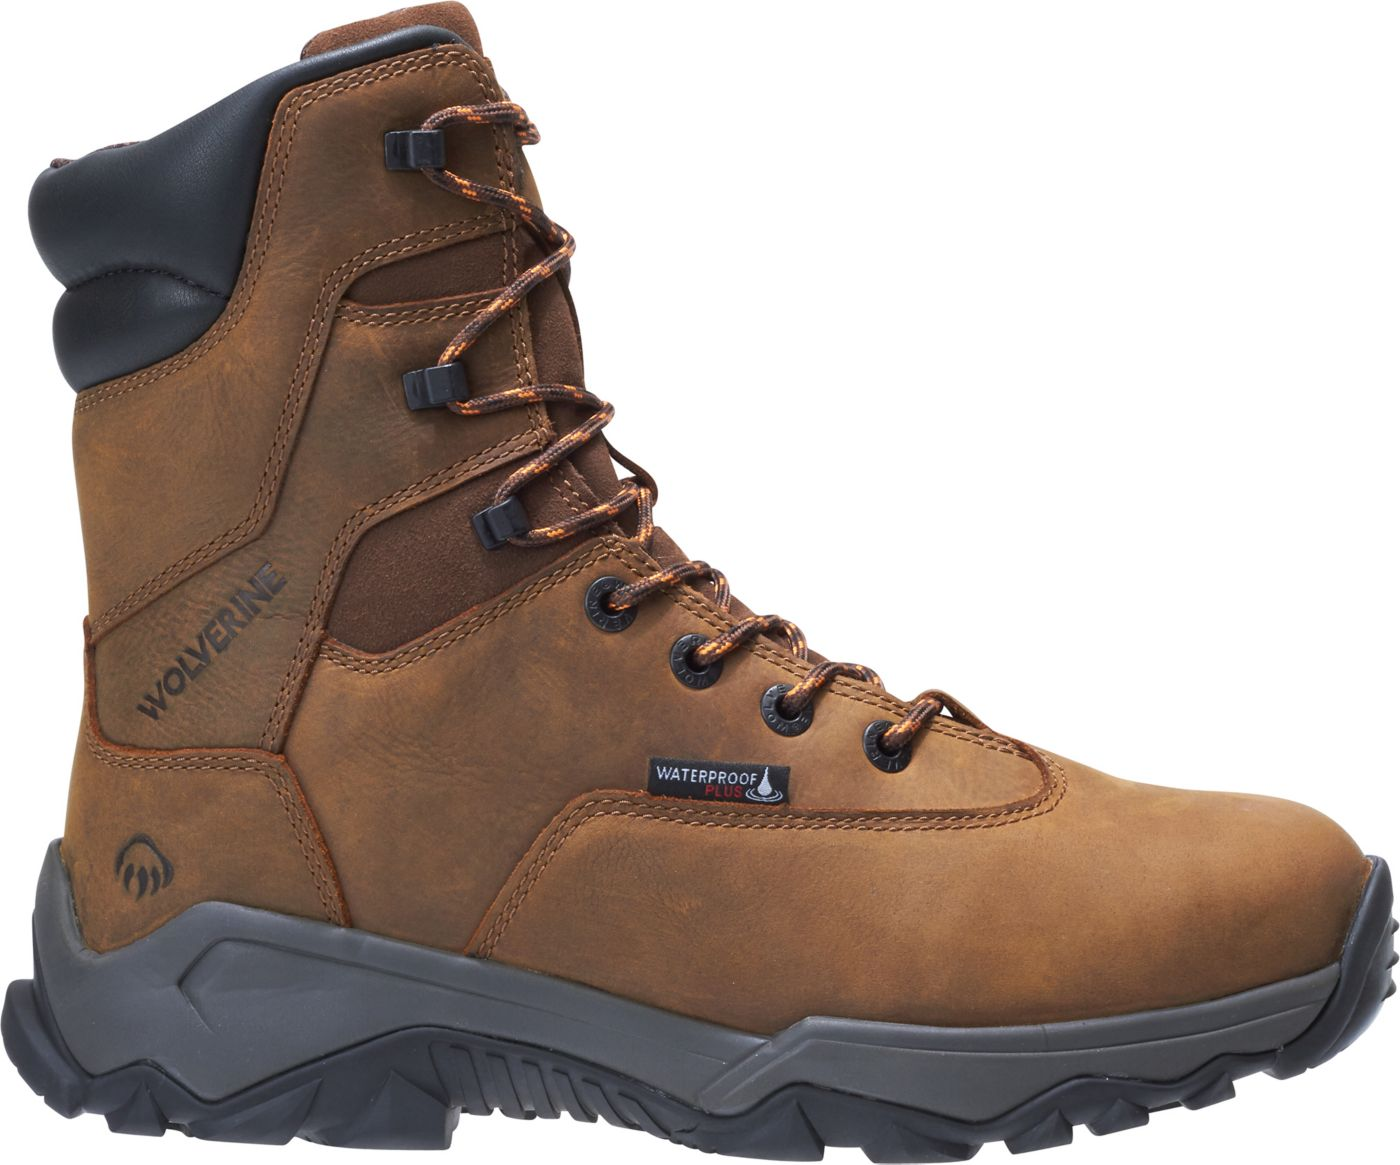 Wolverine Men's Glacier II 8'' 600g Waterproof Work Boots